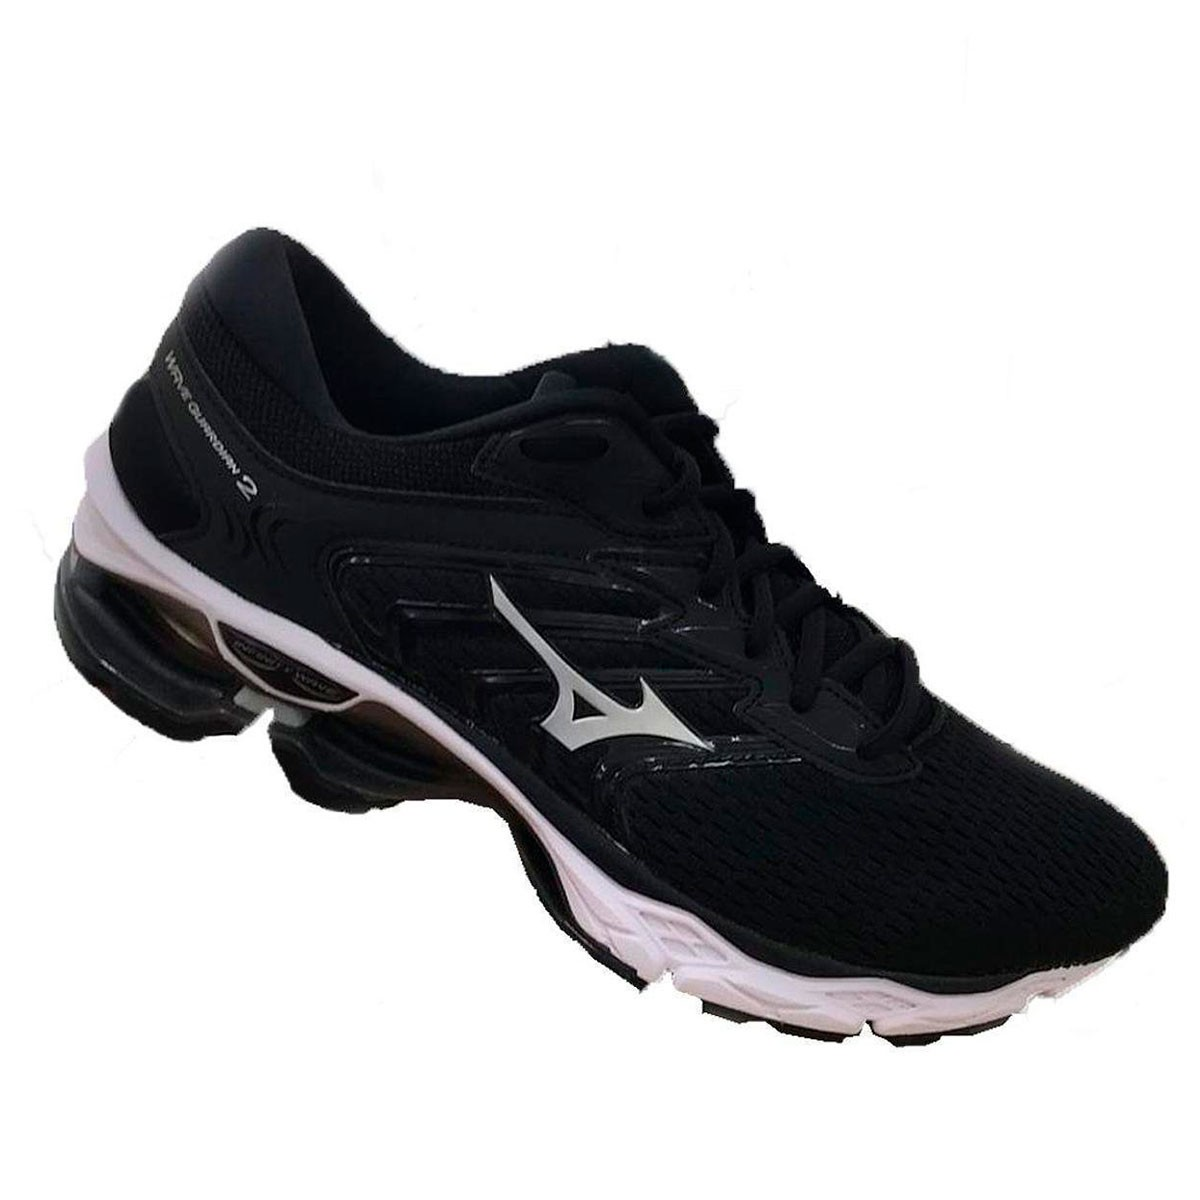 Tênis Mizuno Wave Guardian 2 Preto